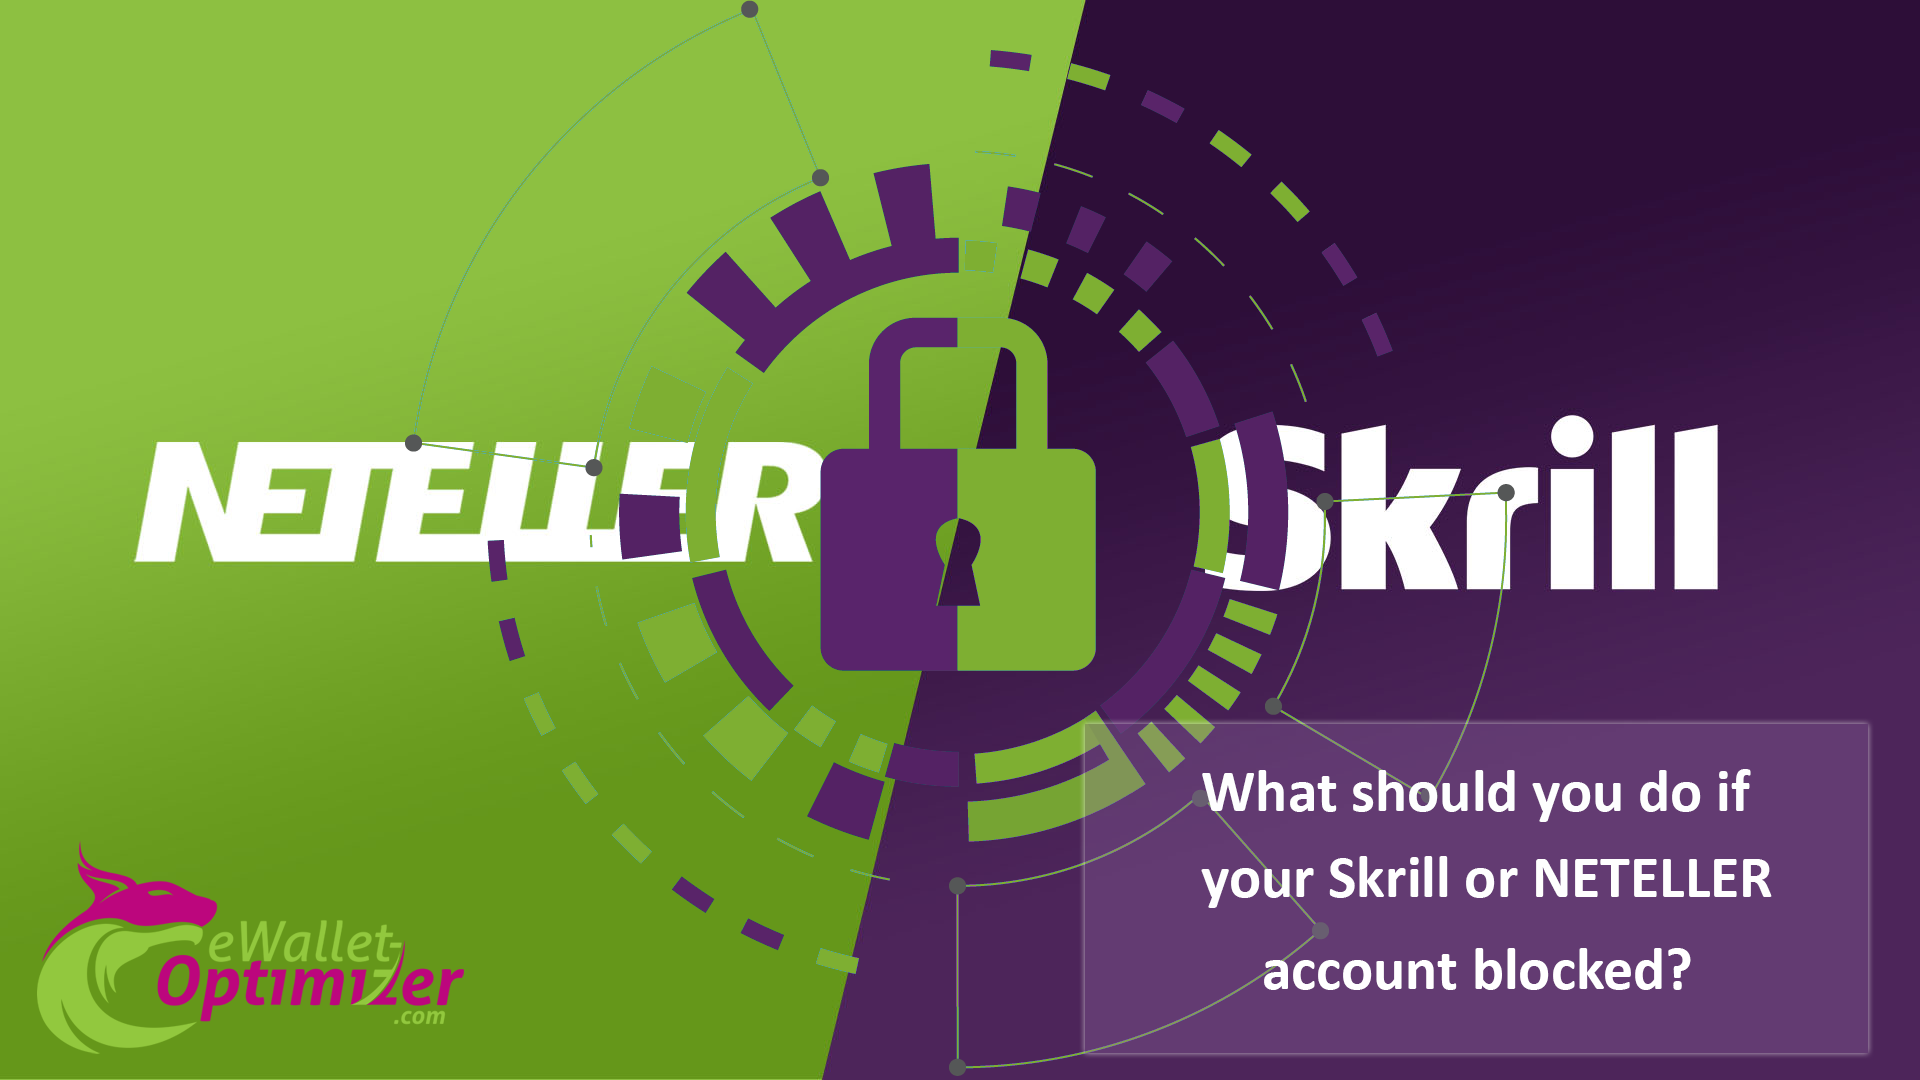 Skrill and NETELLER blocked account